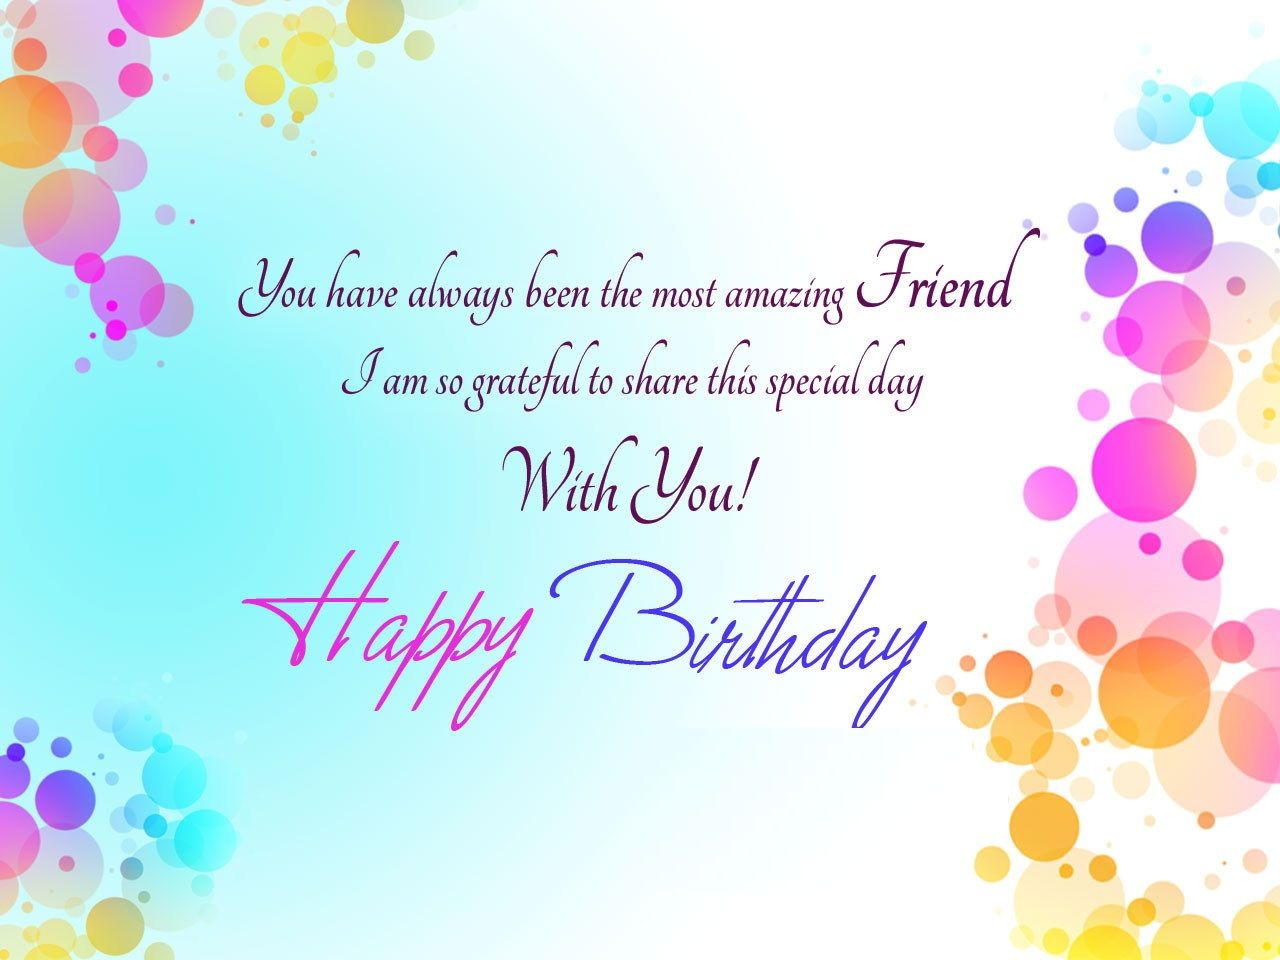 Friend birthday images friend birthday quotes friend birthday friend birthday images friend birthday quotes friend birthday cards happy birthday friend wishes bookmarktalkfo Image collections